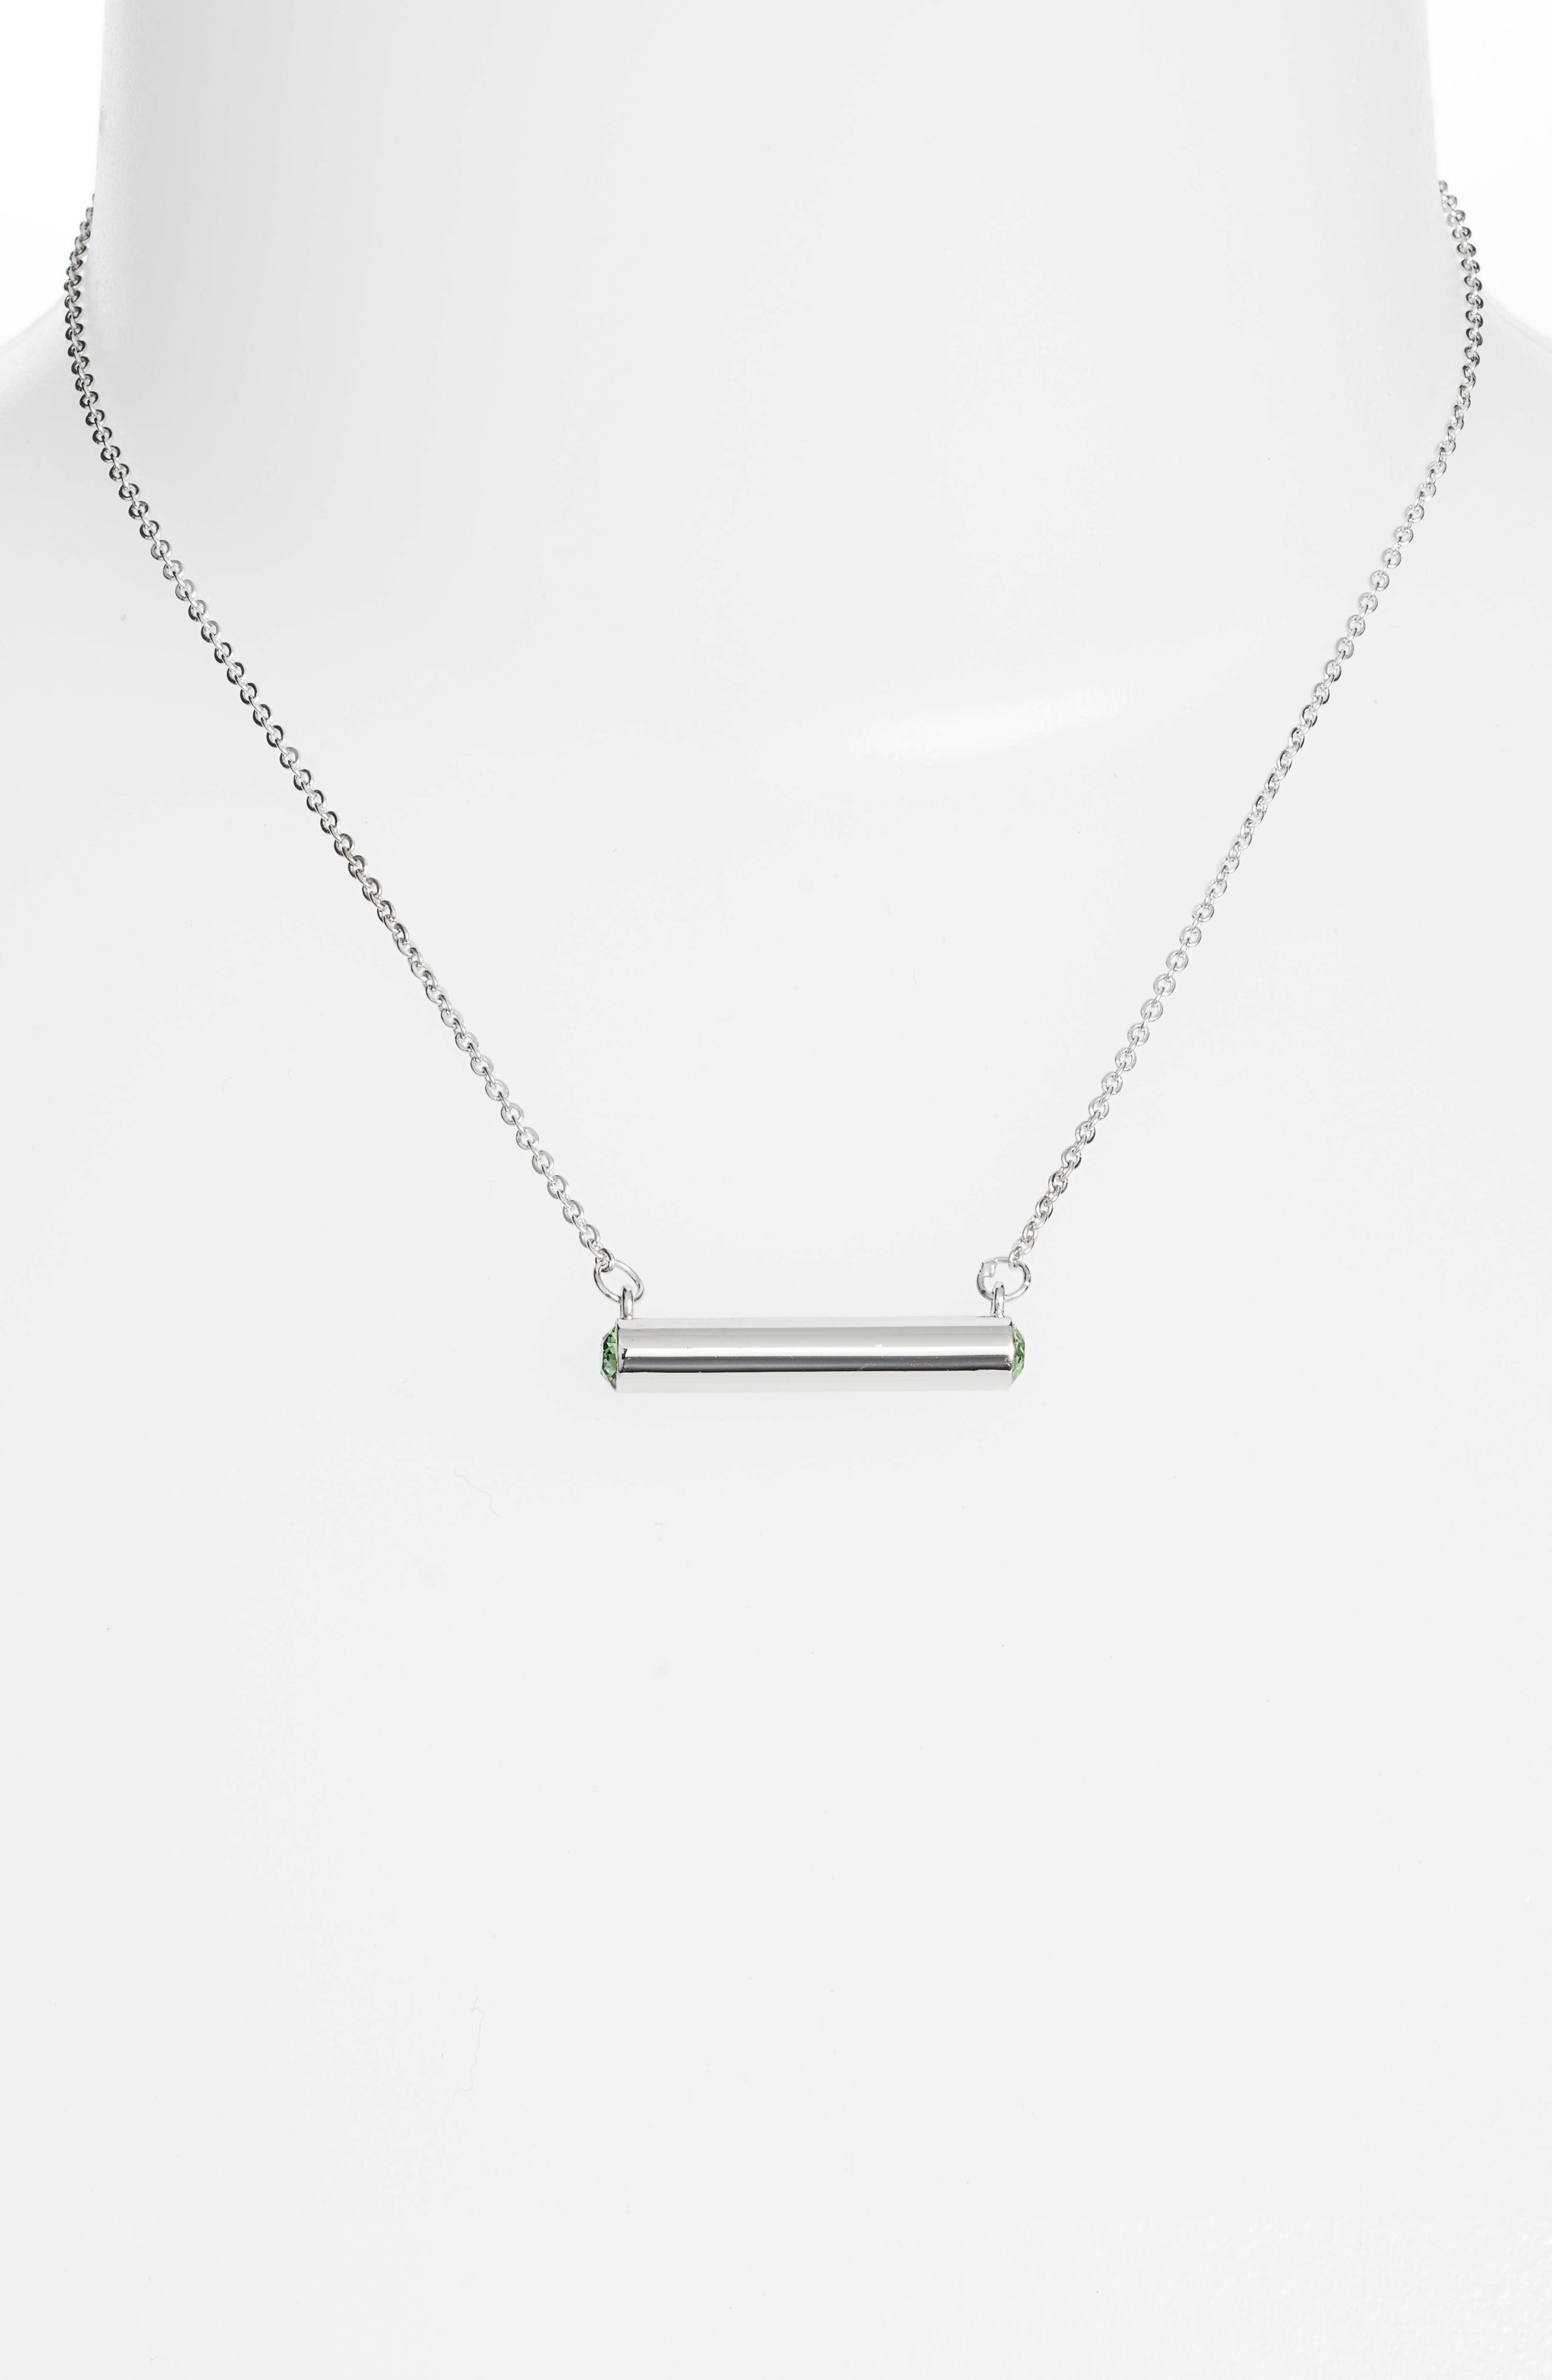 August Crystal Bar Pendant Necklace,                             Alternate thumbnail 2, color,                             Silver